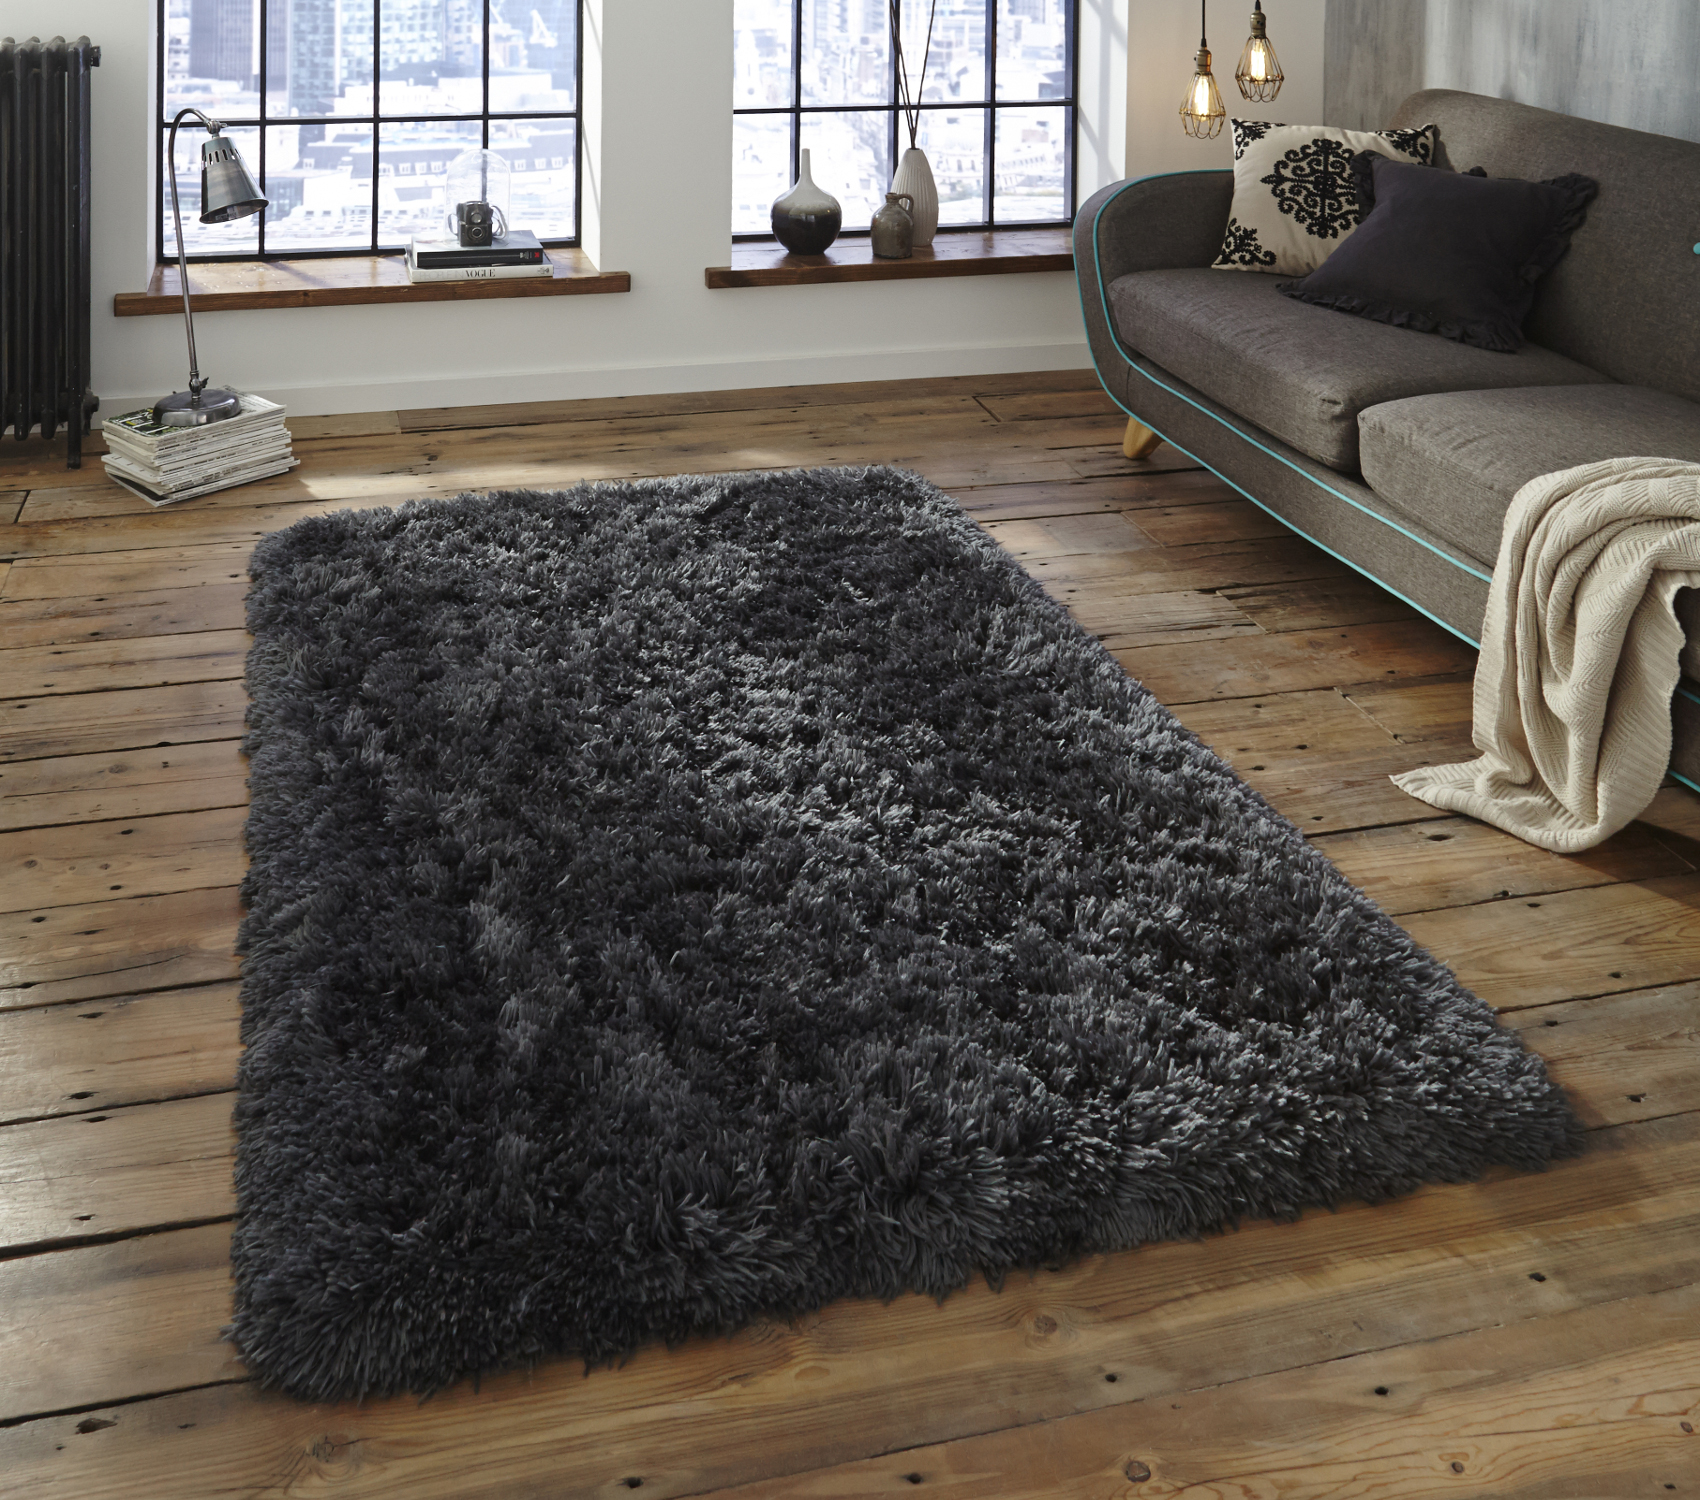 Polar Hand Tufted Thick 8.5cm Shaggy Pile Rug Soft